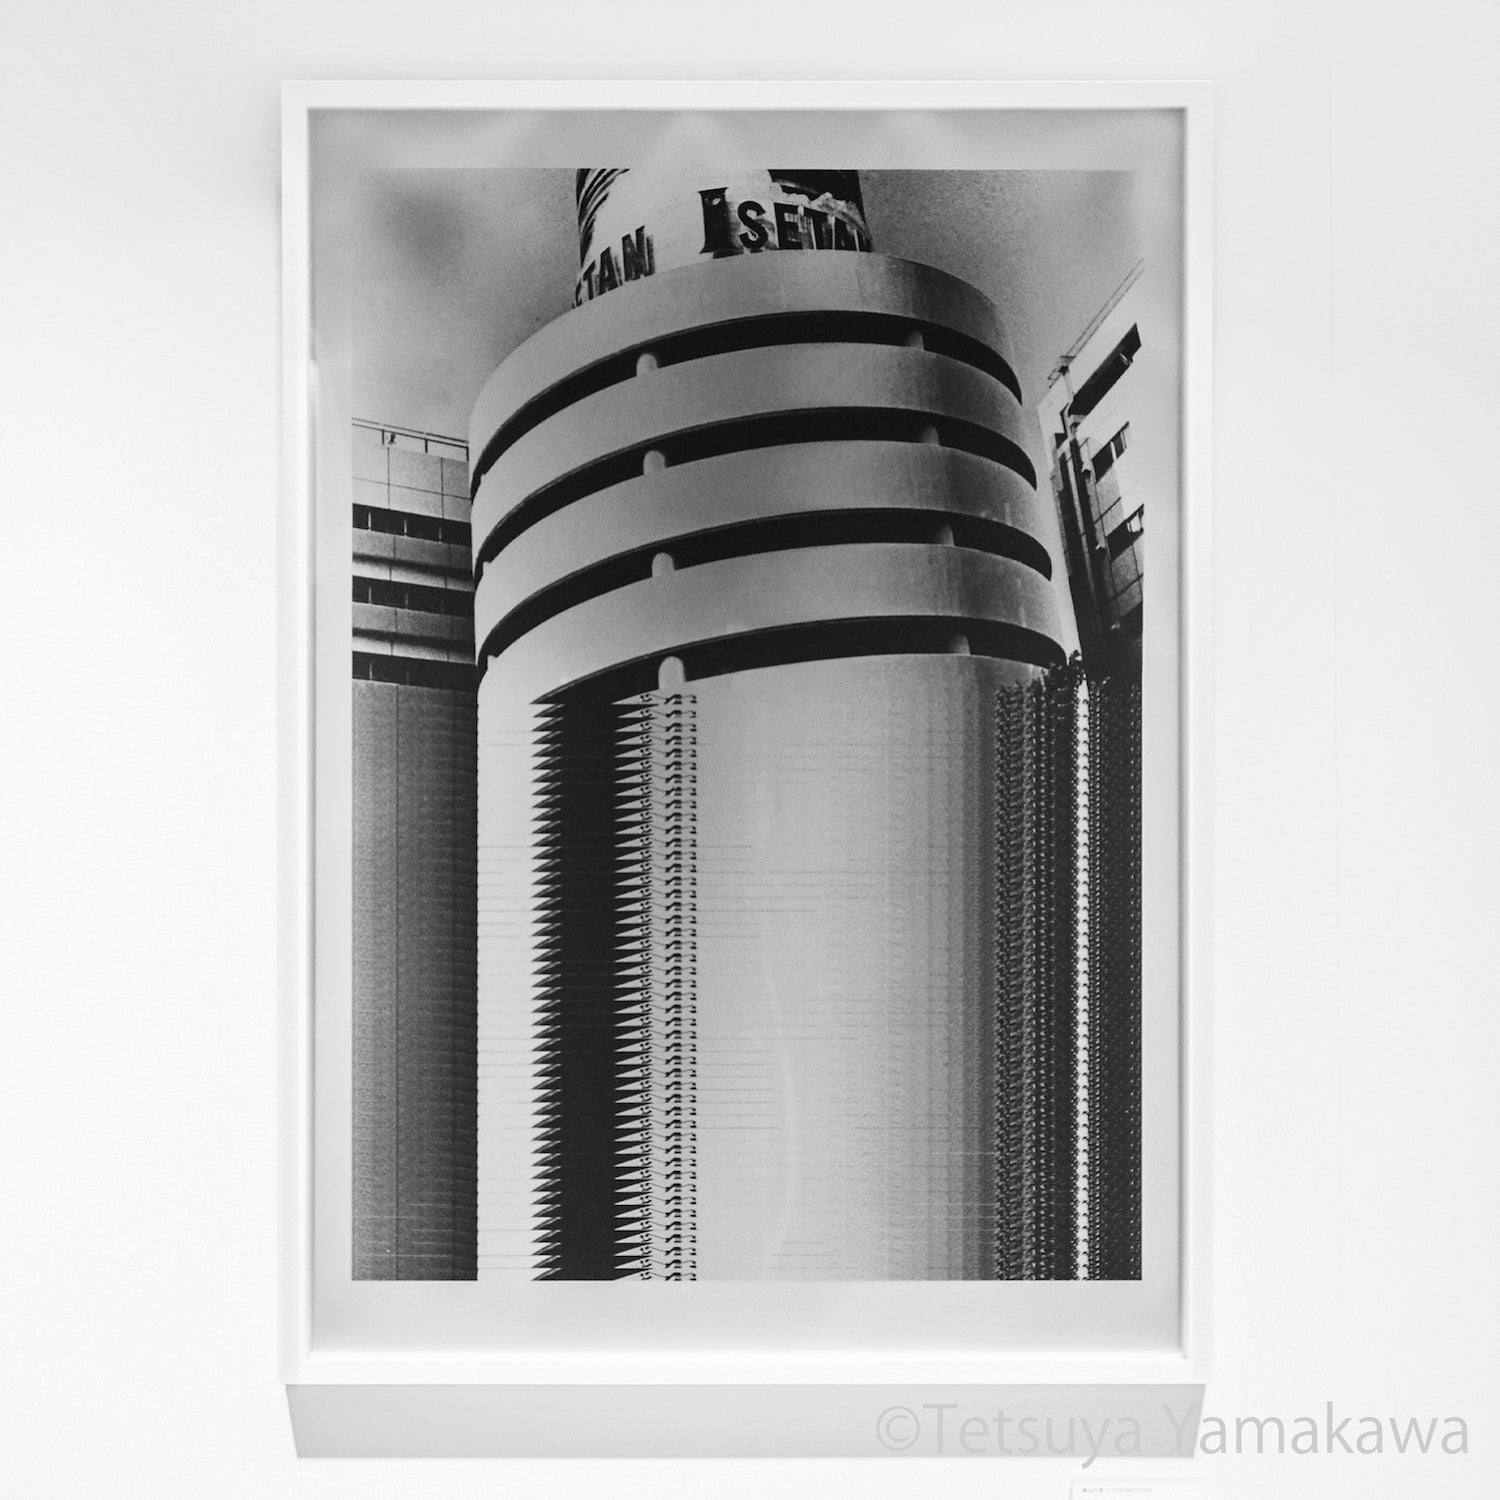 SR-03 LIMITED EDITION SILVER ART PRINT